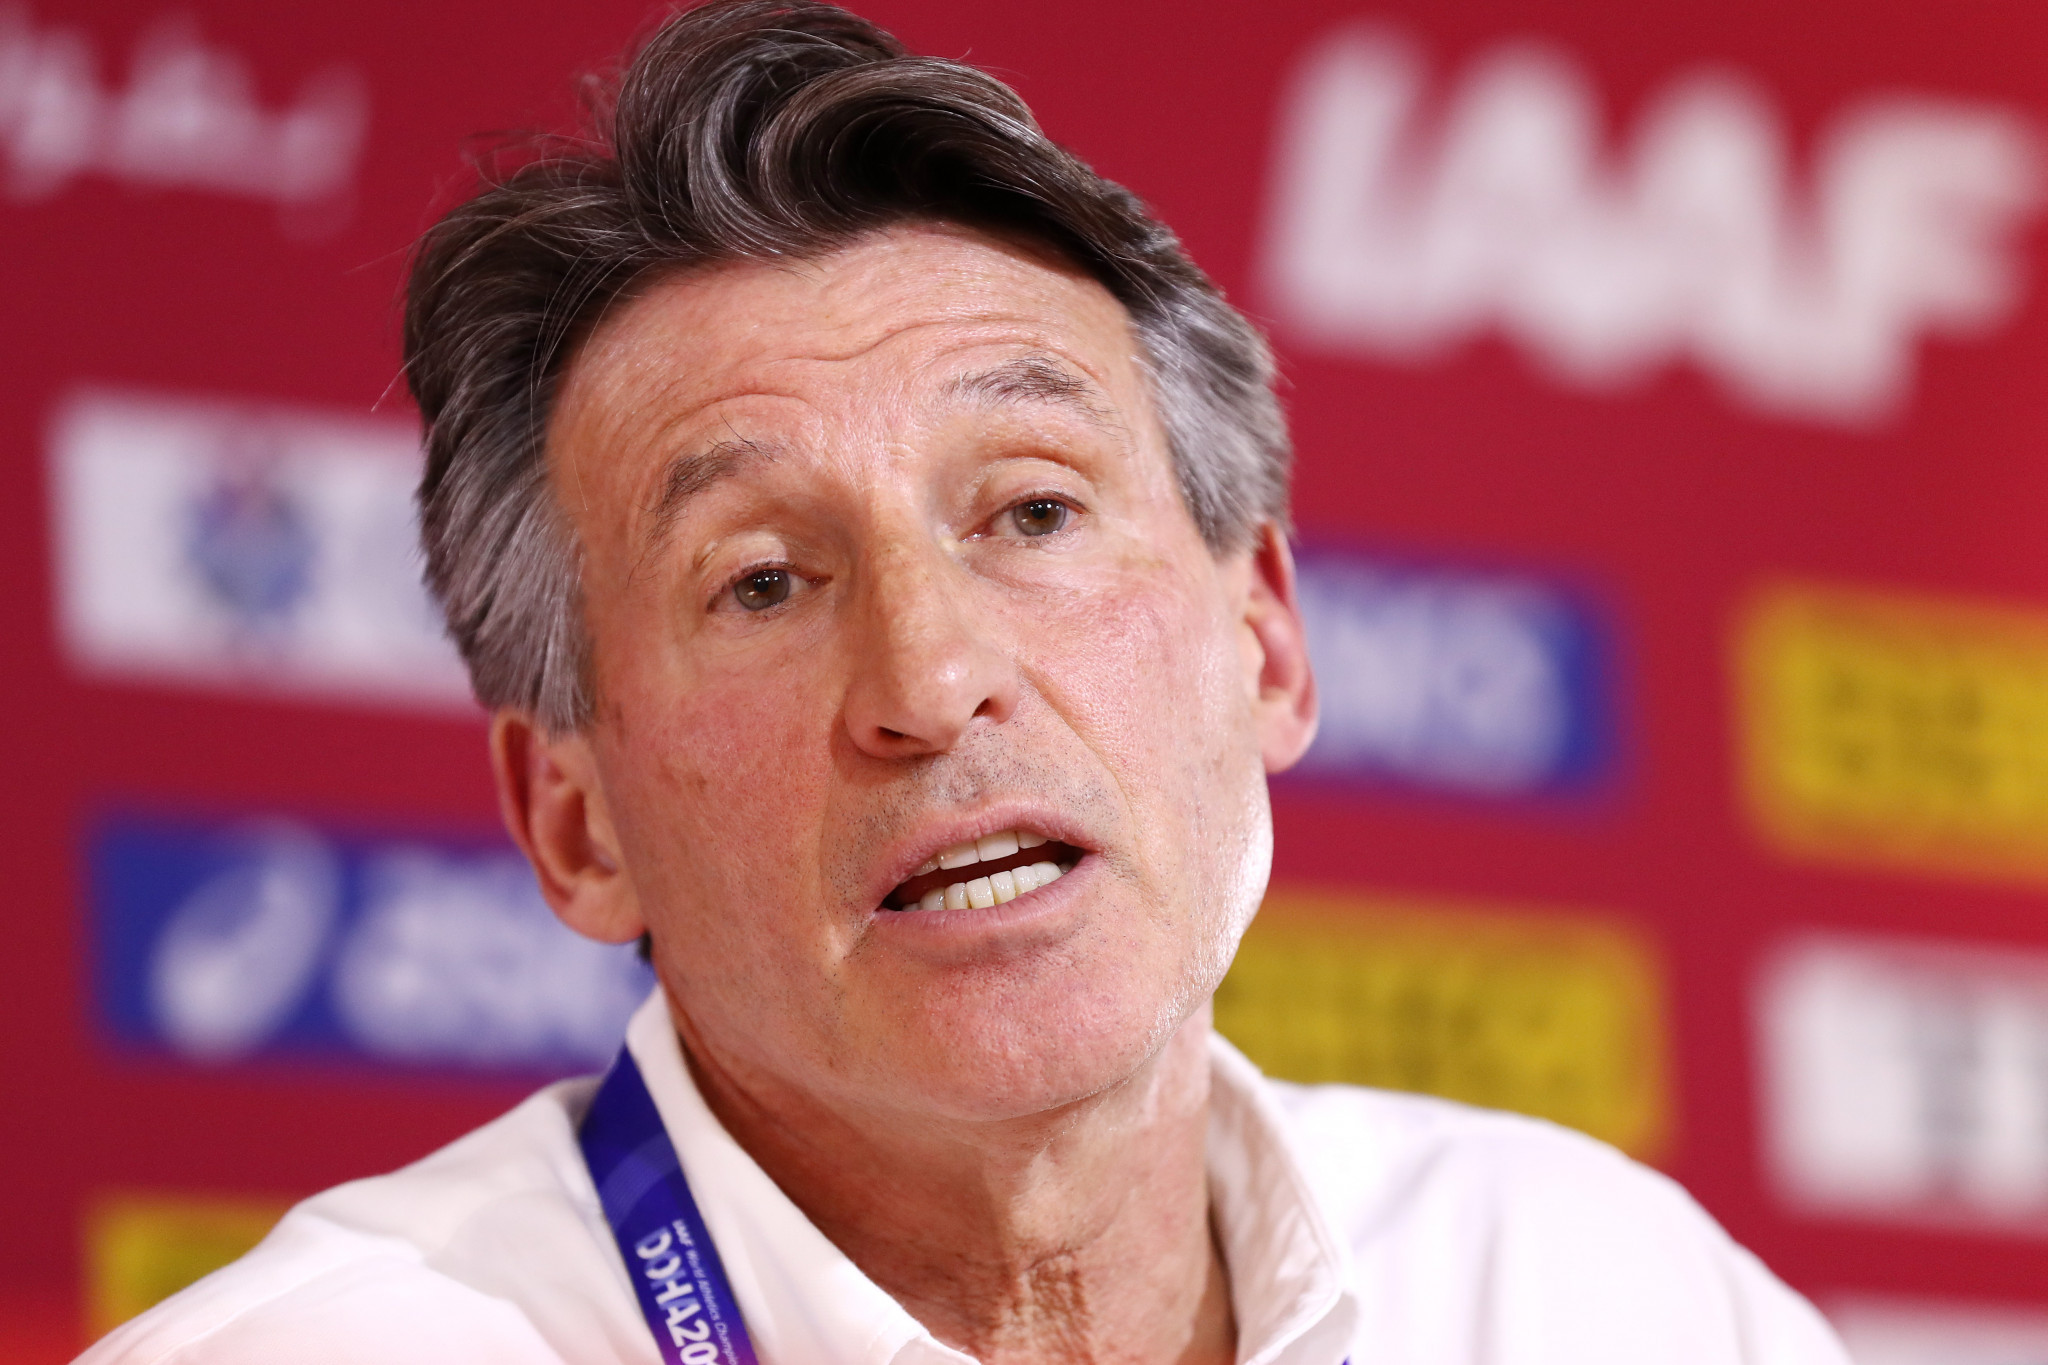 World Athletics President Sebastian Coe said the packed summer schedule in 2022 will be a